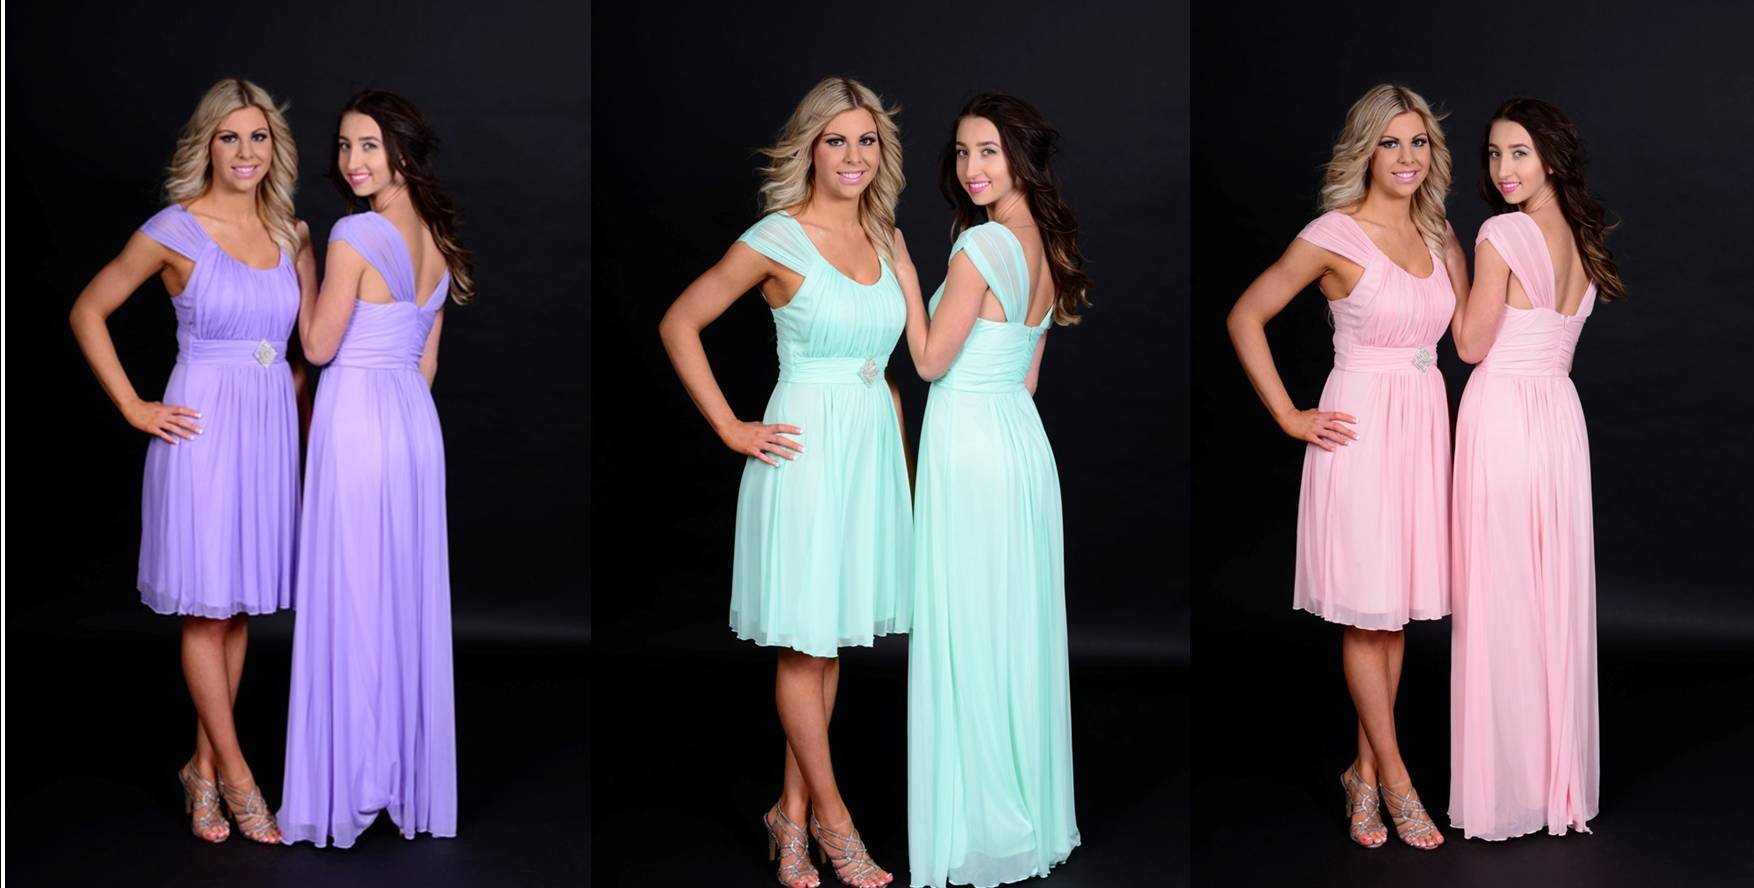 Bridesmaid dresses melbourne pages 1 5 text version anyflip check this link httpwendy annshop right here for more information on bridesmaid dresses melbourne choosing bridesmaids dresses is just as ombrellifo Image collections